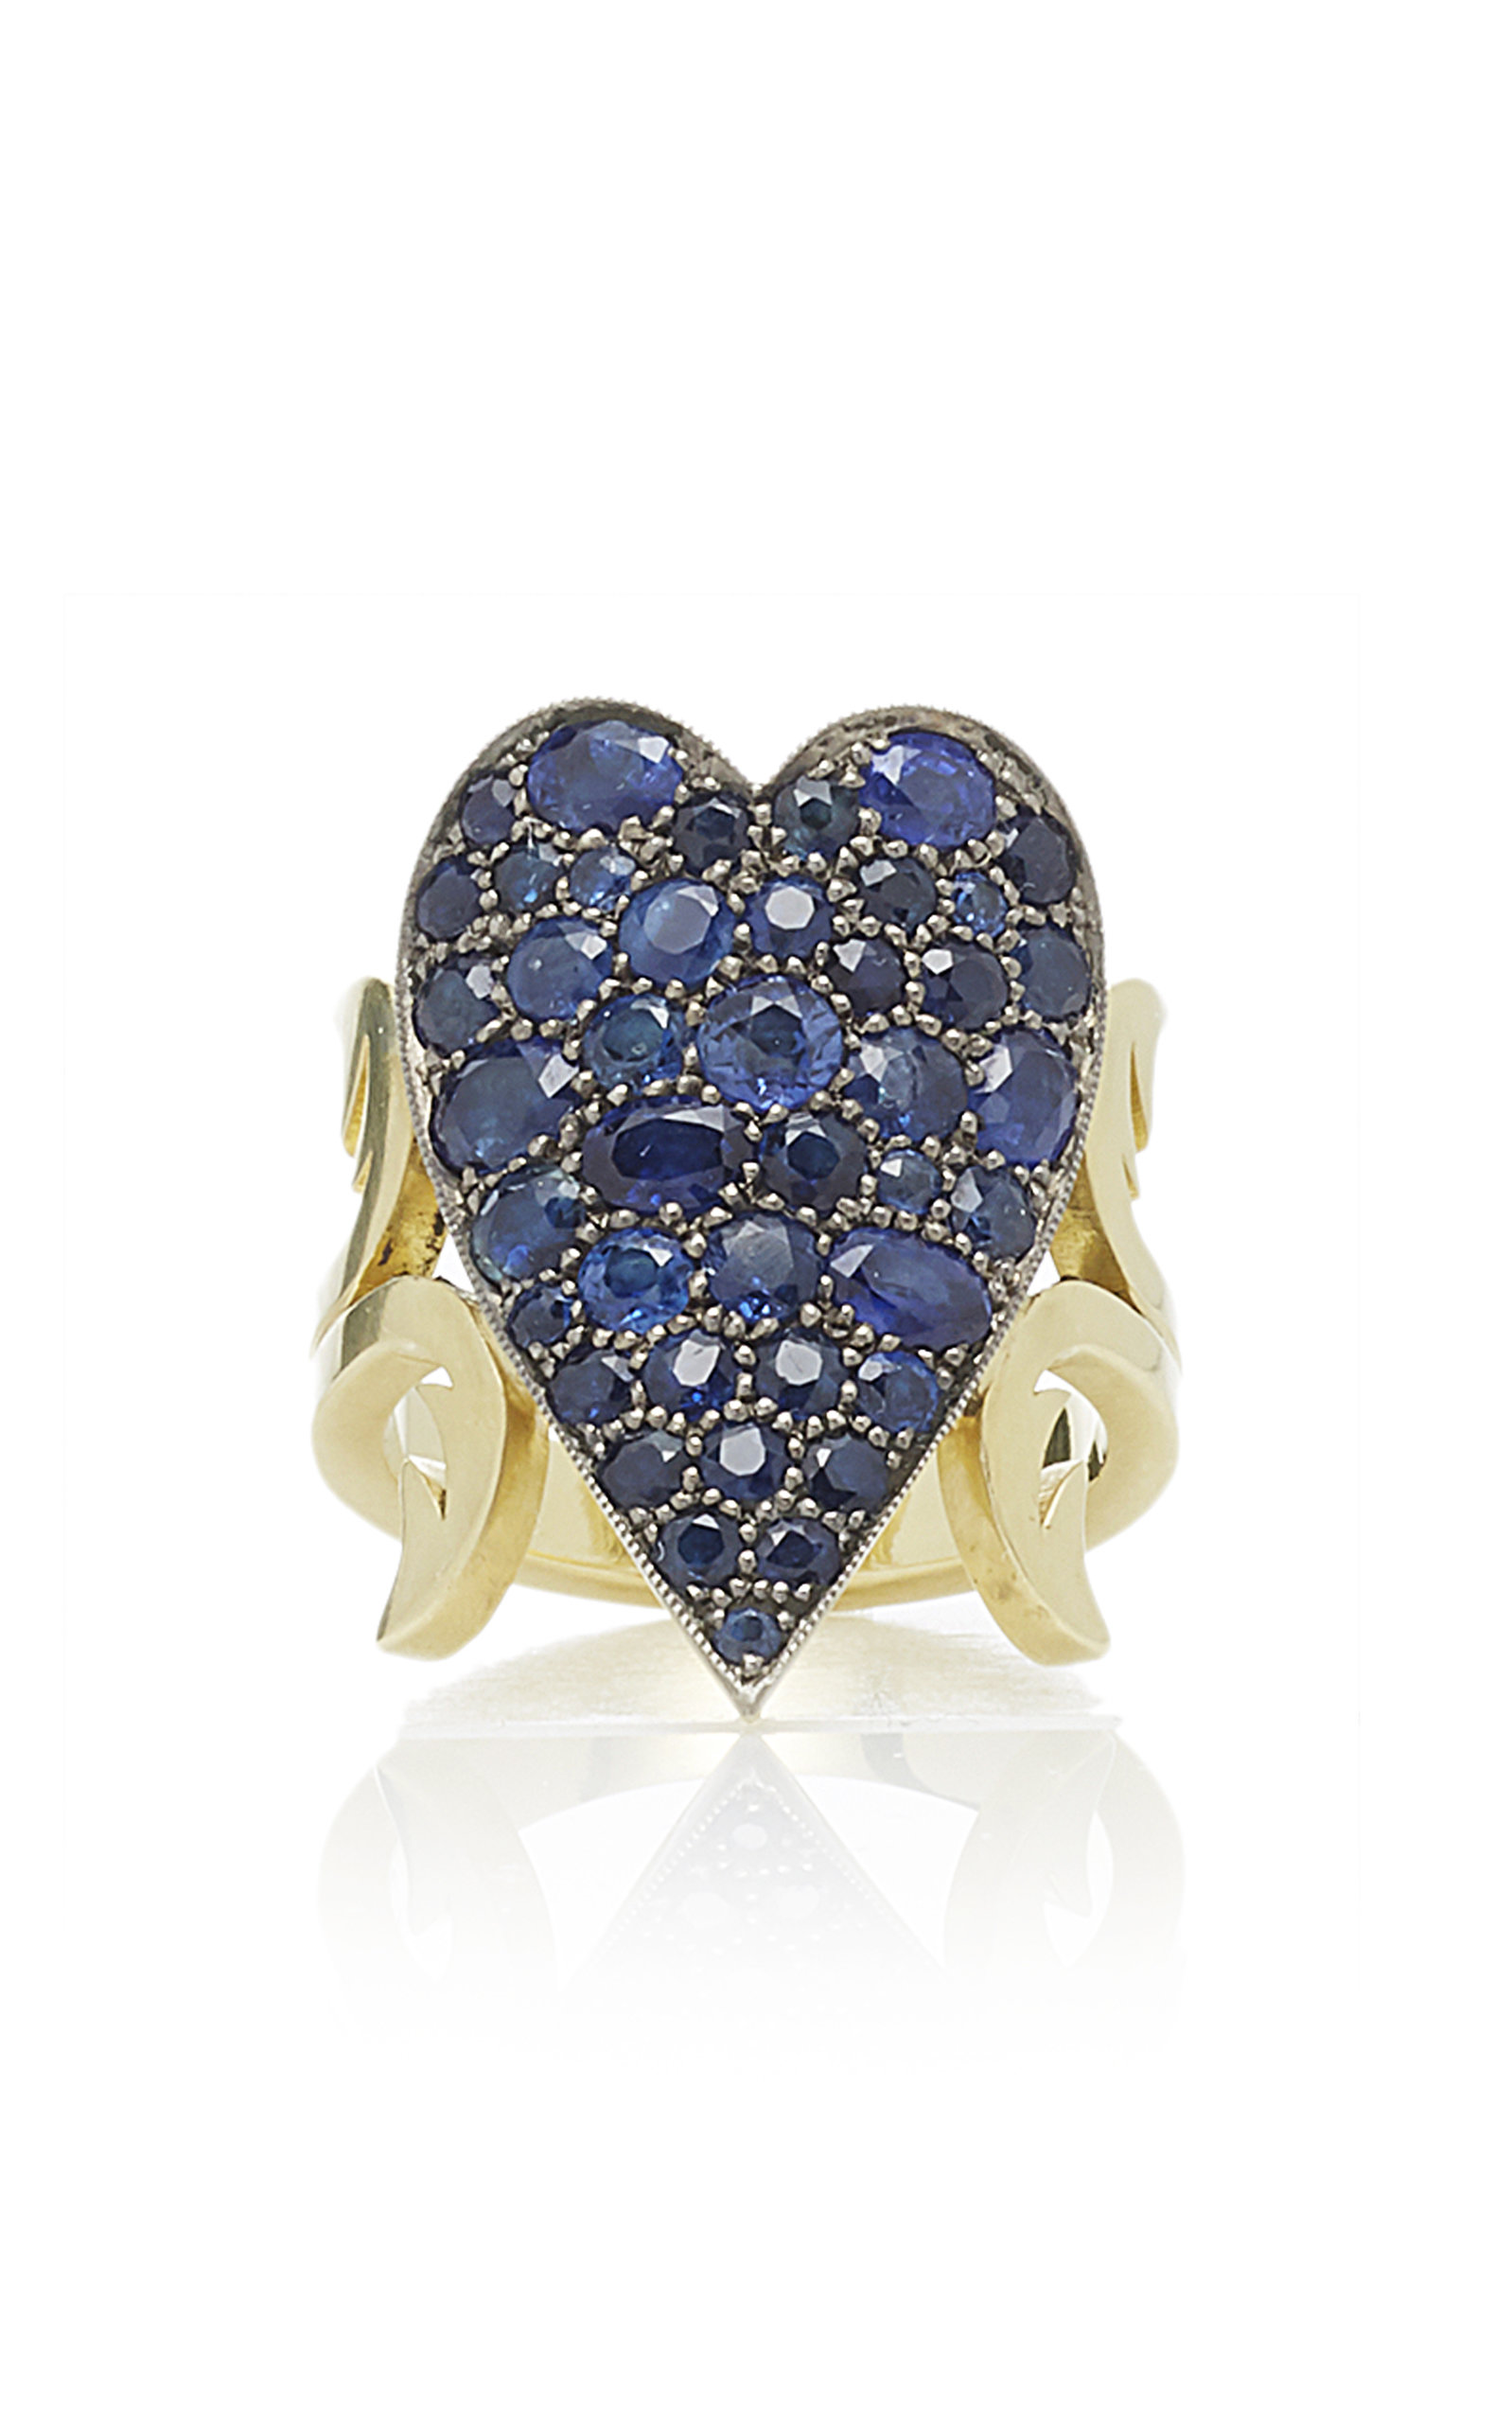 SAPPHIRE HEART TEN TABLE RING